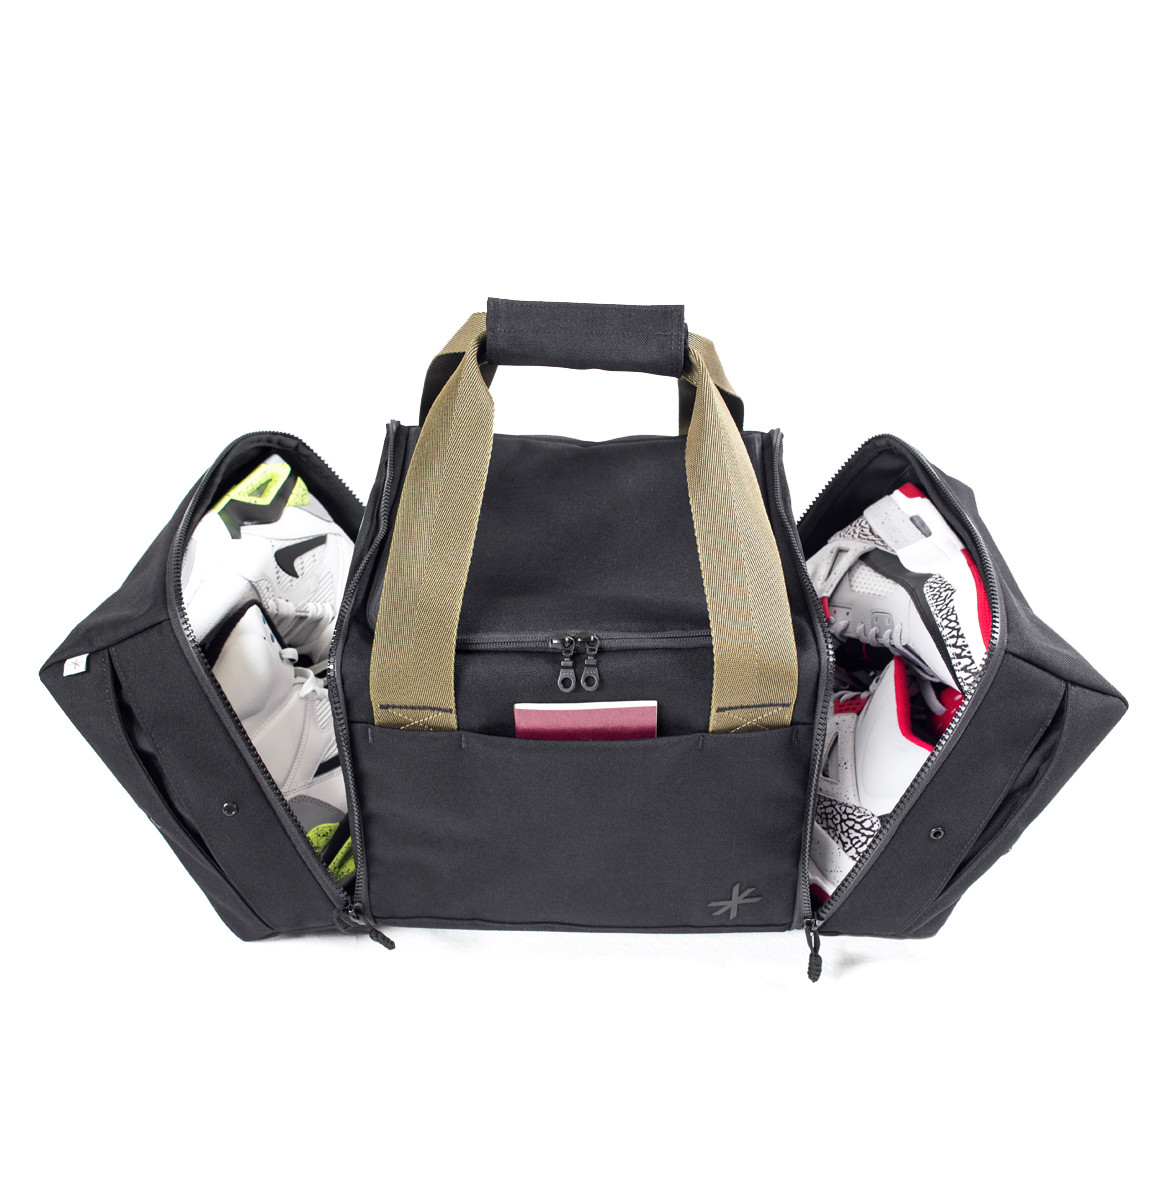 56f80460a84862 The Shrine Sneaker Luggage Holiday Collection - HisPotion